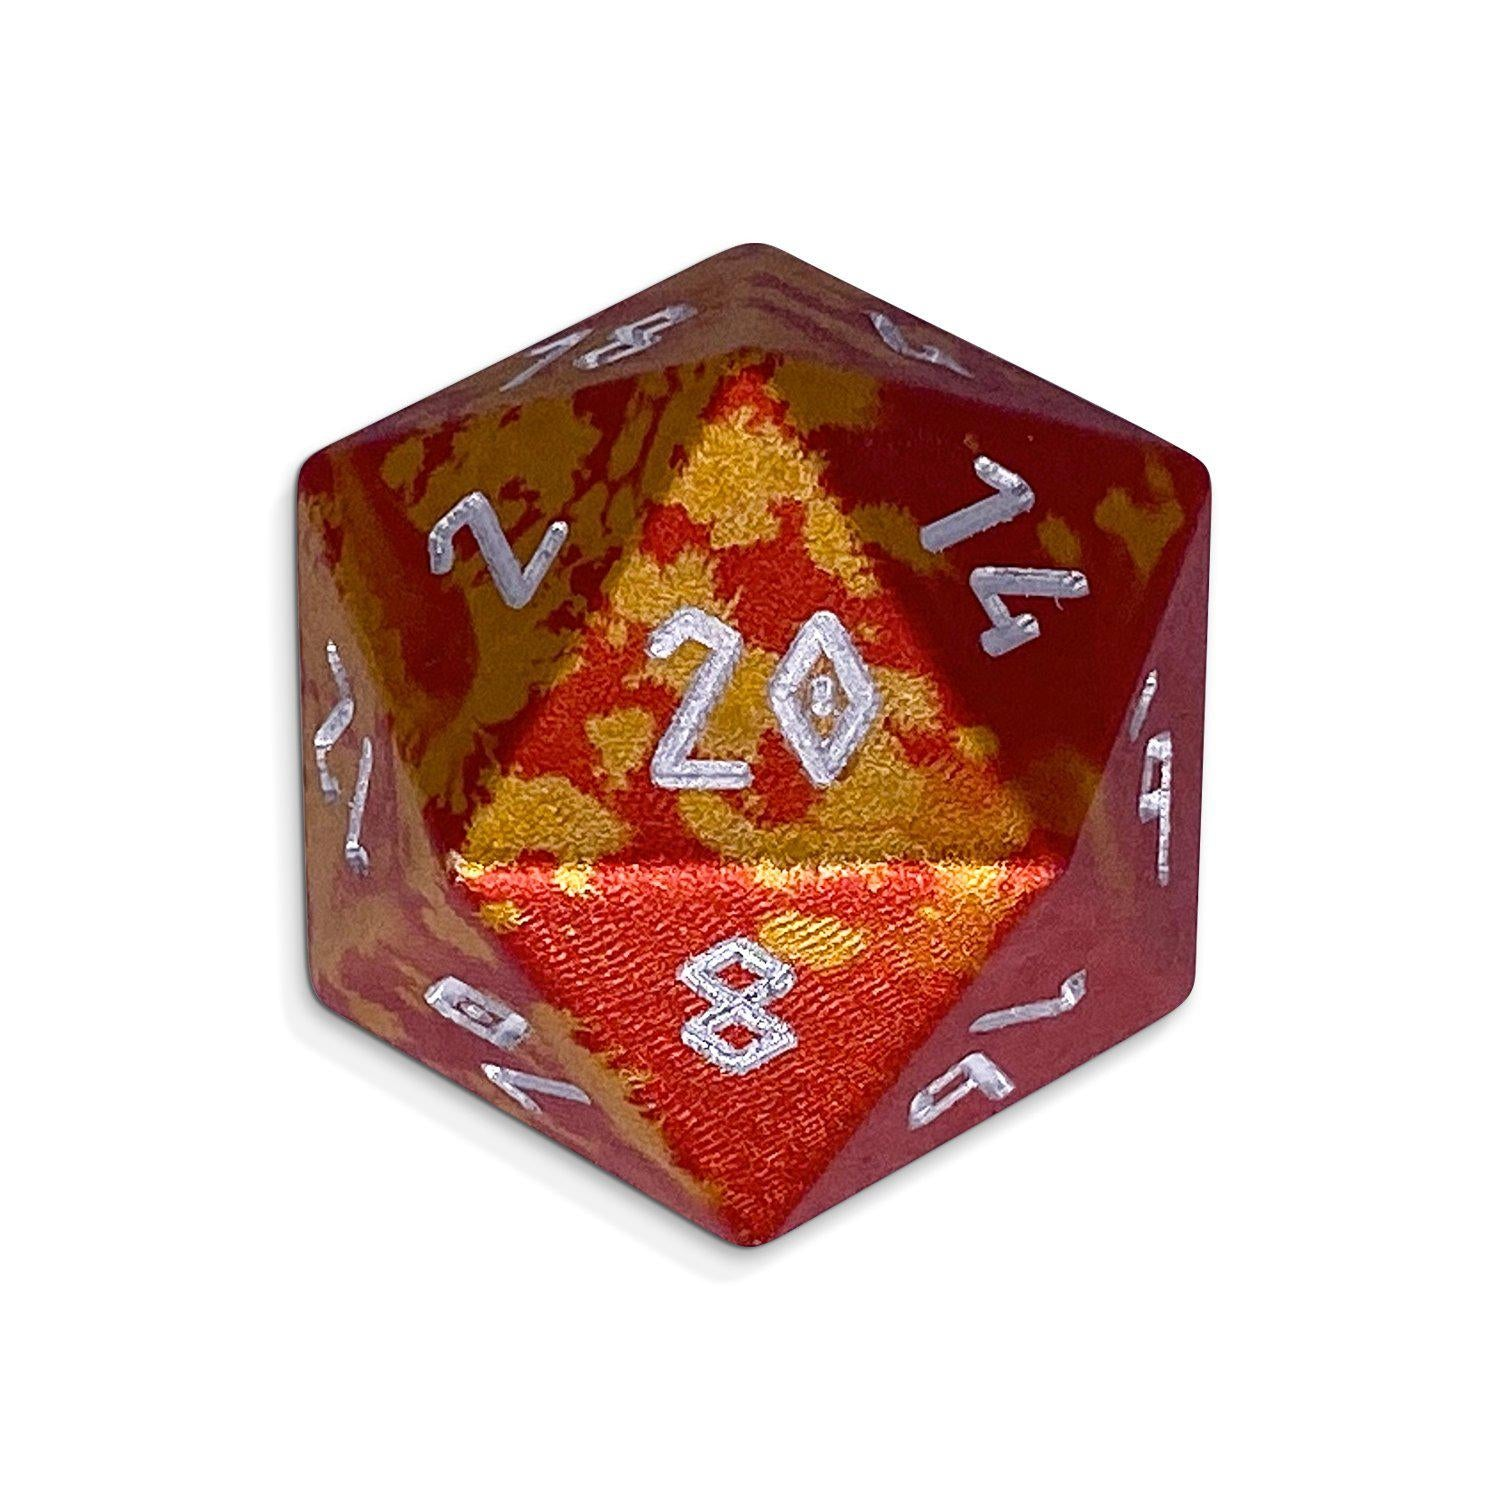 Single Wondrous Dice® D20 in Phoenix Tears by Norse Foundry® 6063 Aircraft Grade Aluminum